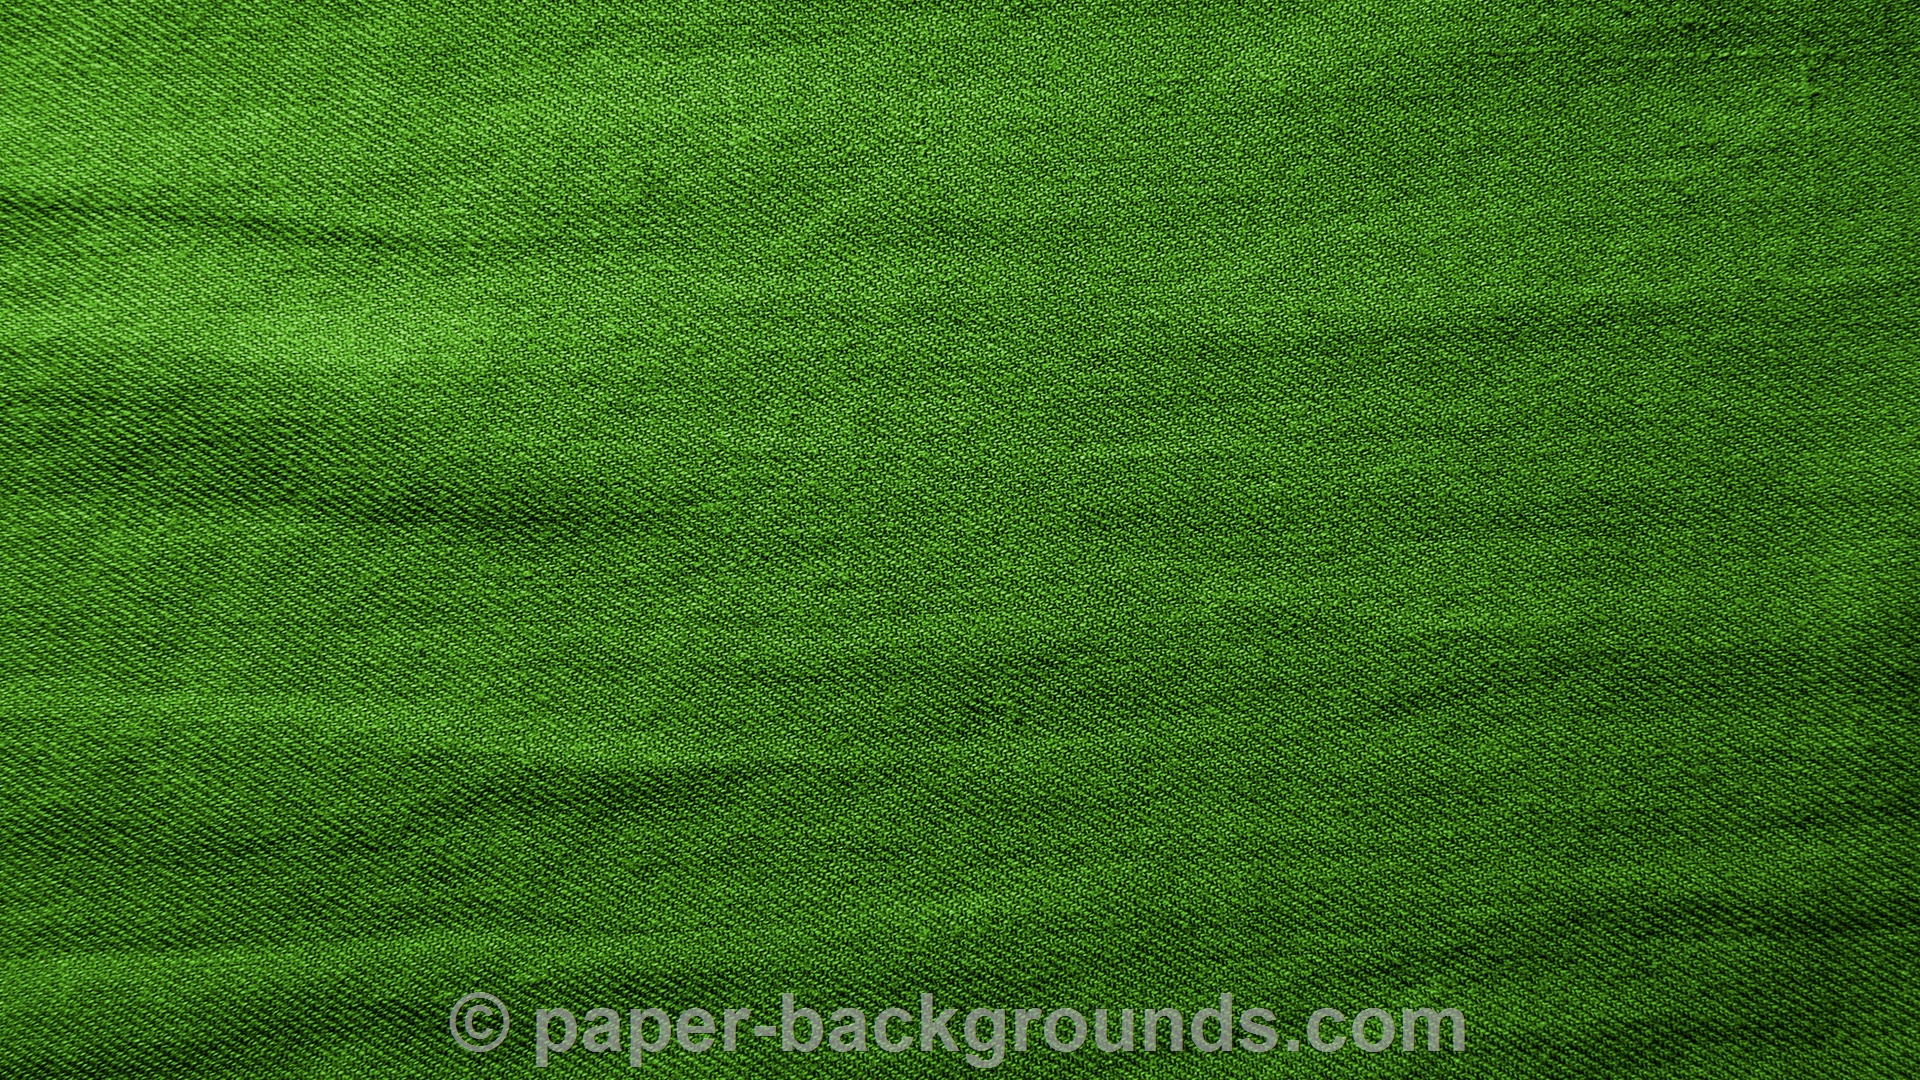 Paper Backgrounds | Wrinkled Green Canvas Texture HD